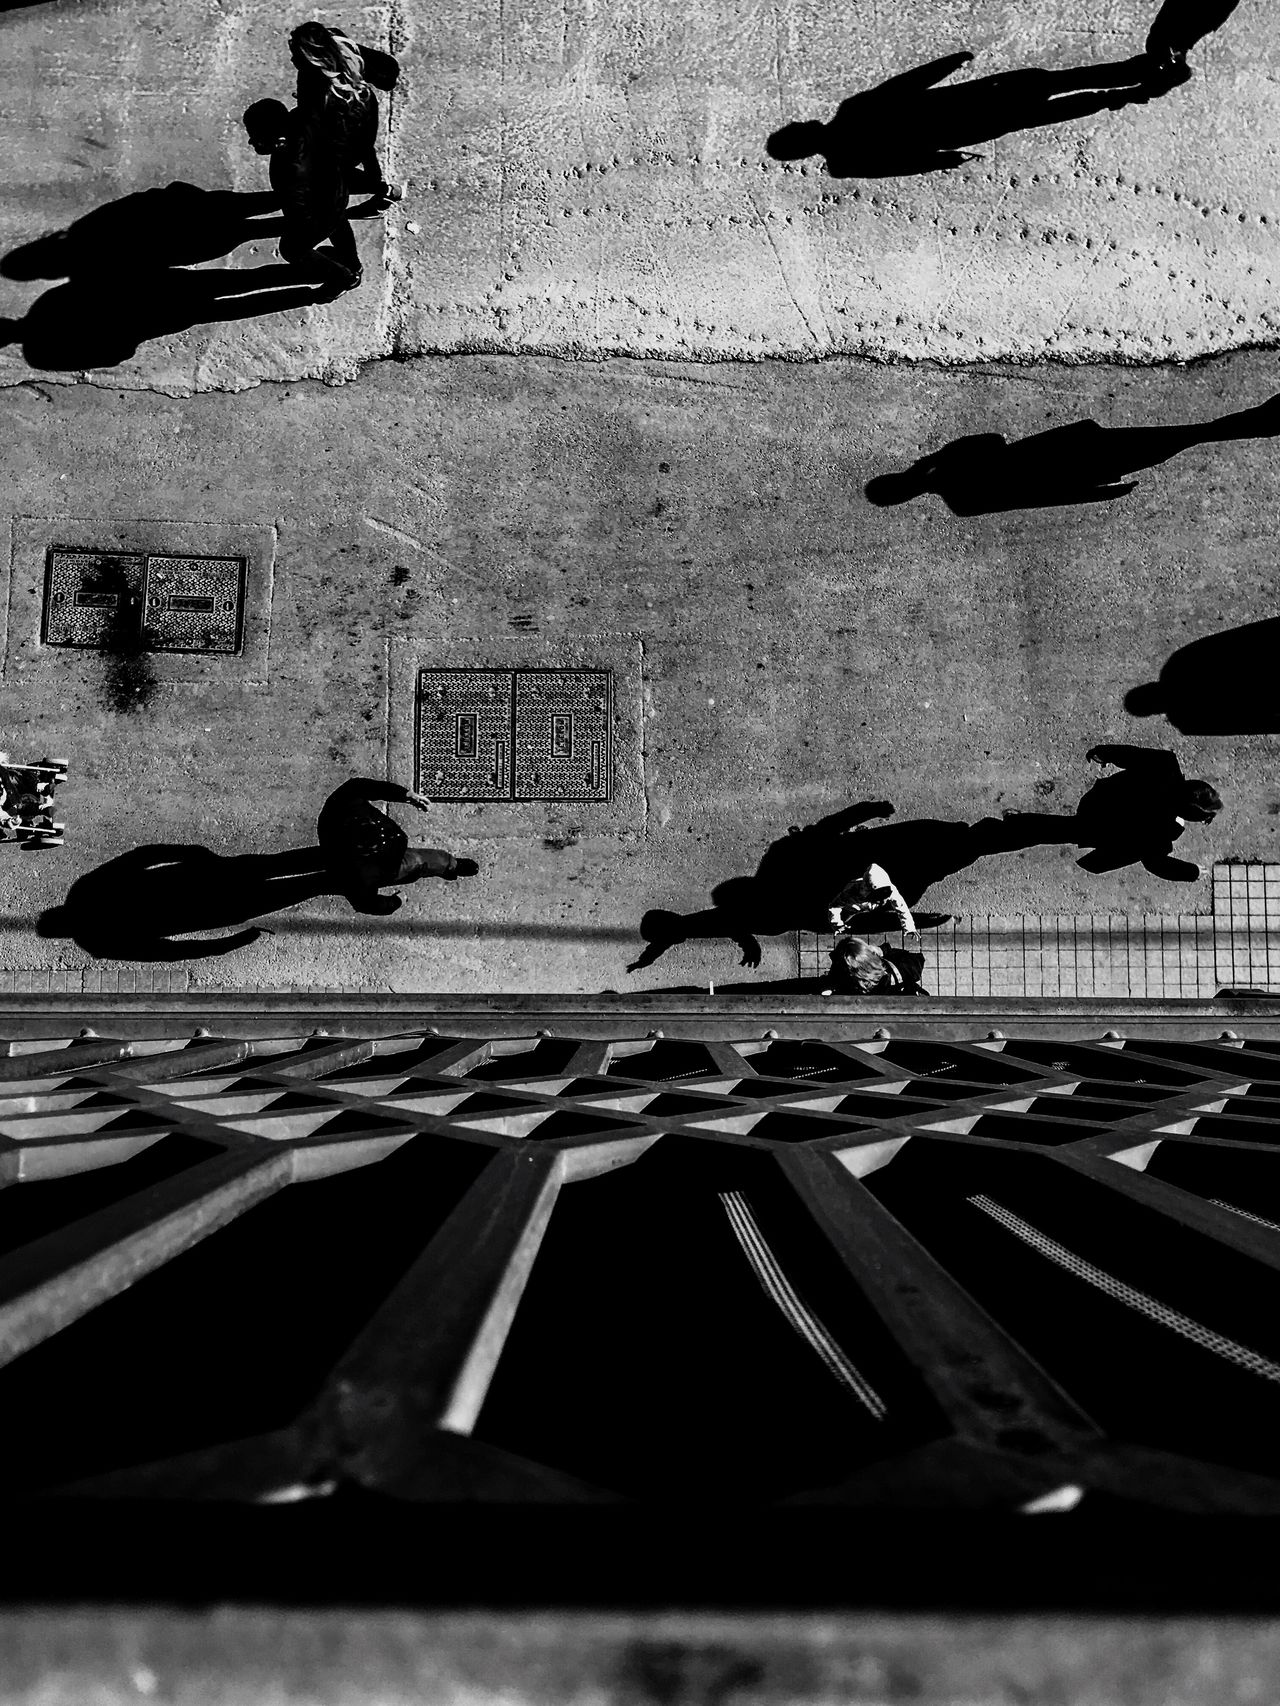 blackandwhite black animal themes built structure day Architecture building exterior outdoors no people mammal Istanbul EyeEmNewHere first eyeem photo Welcome to Black Welcome to Black Welcome to Black Long Goodbye resist